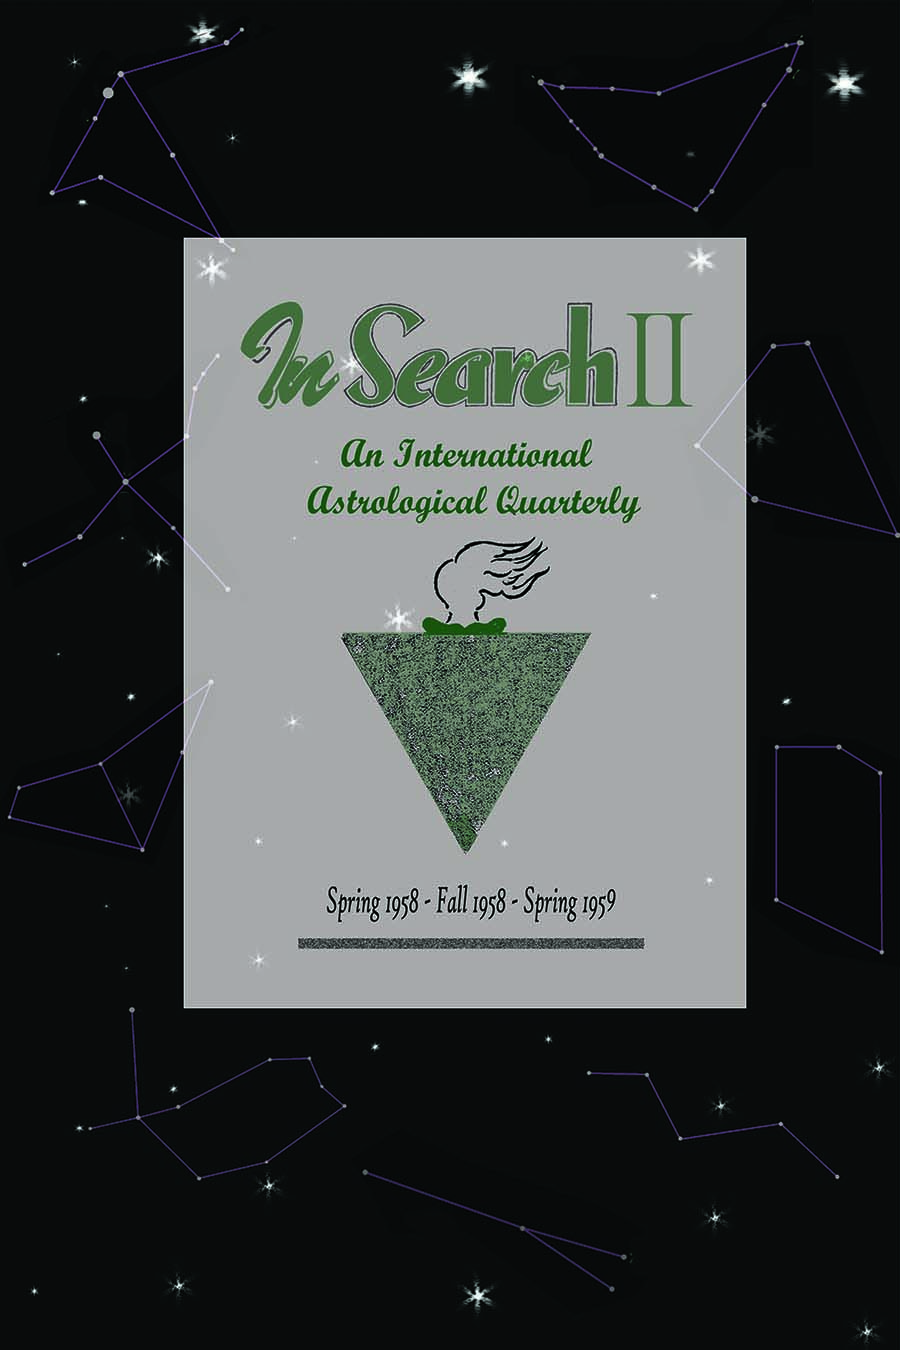 insearch II cover